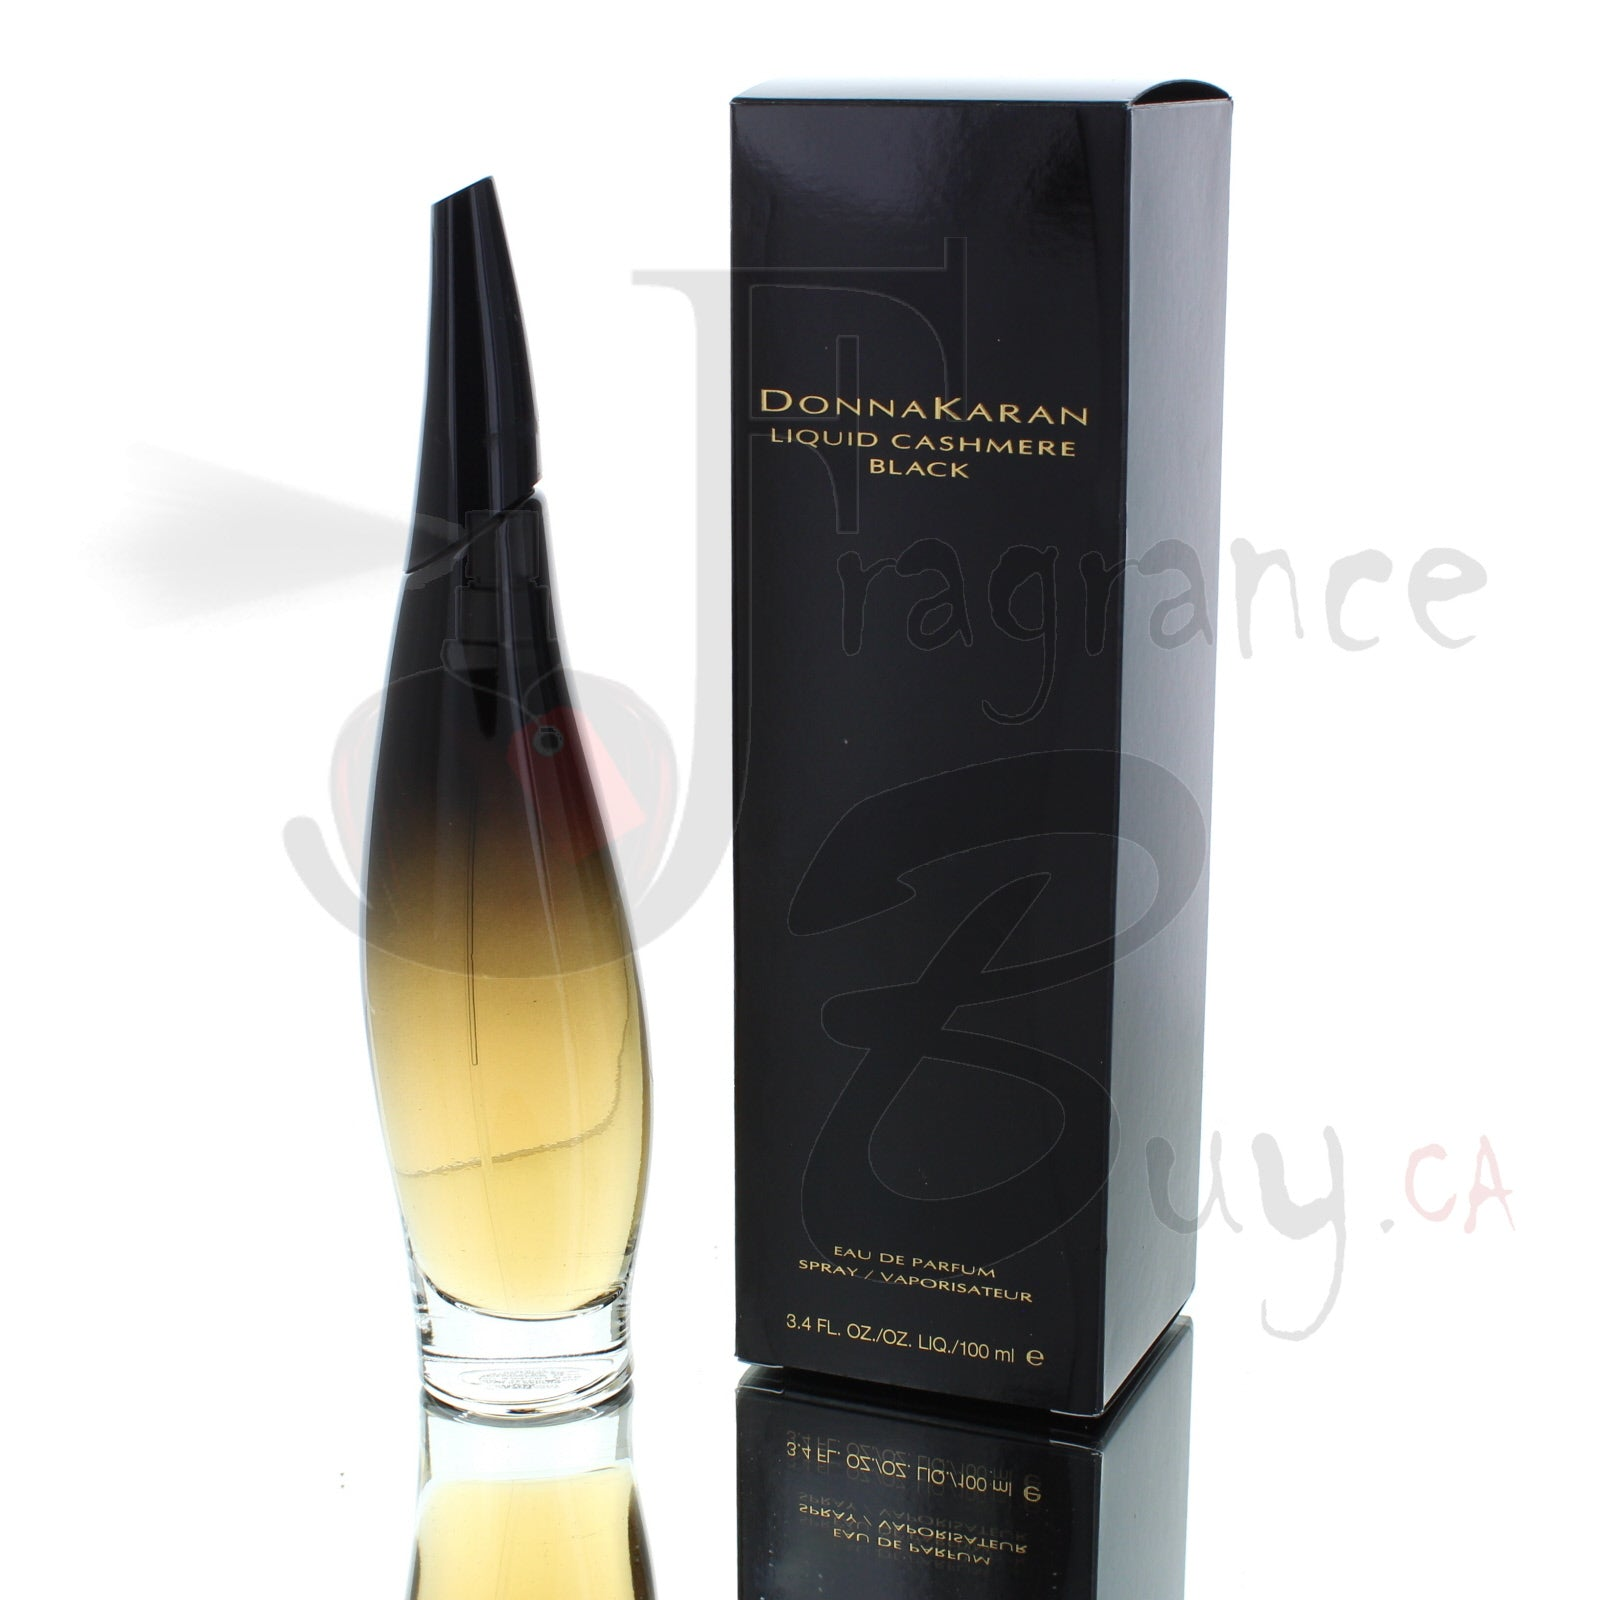 DKNY Donna Karan Liquid Cashmere Black For Woman